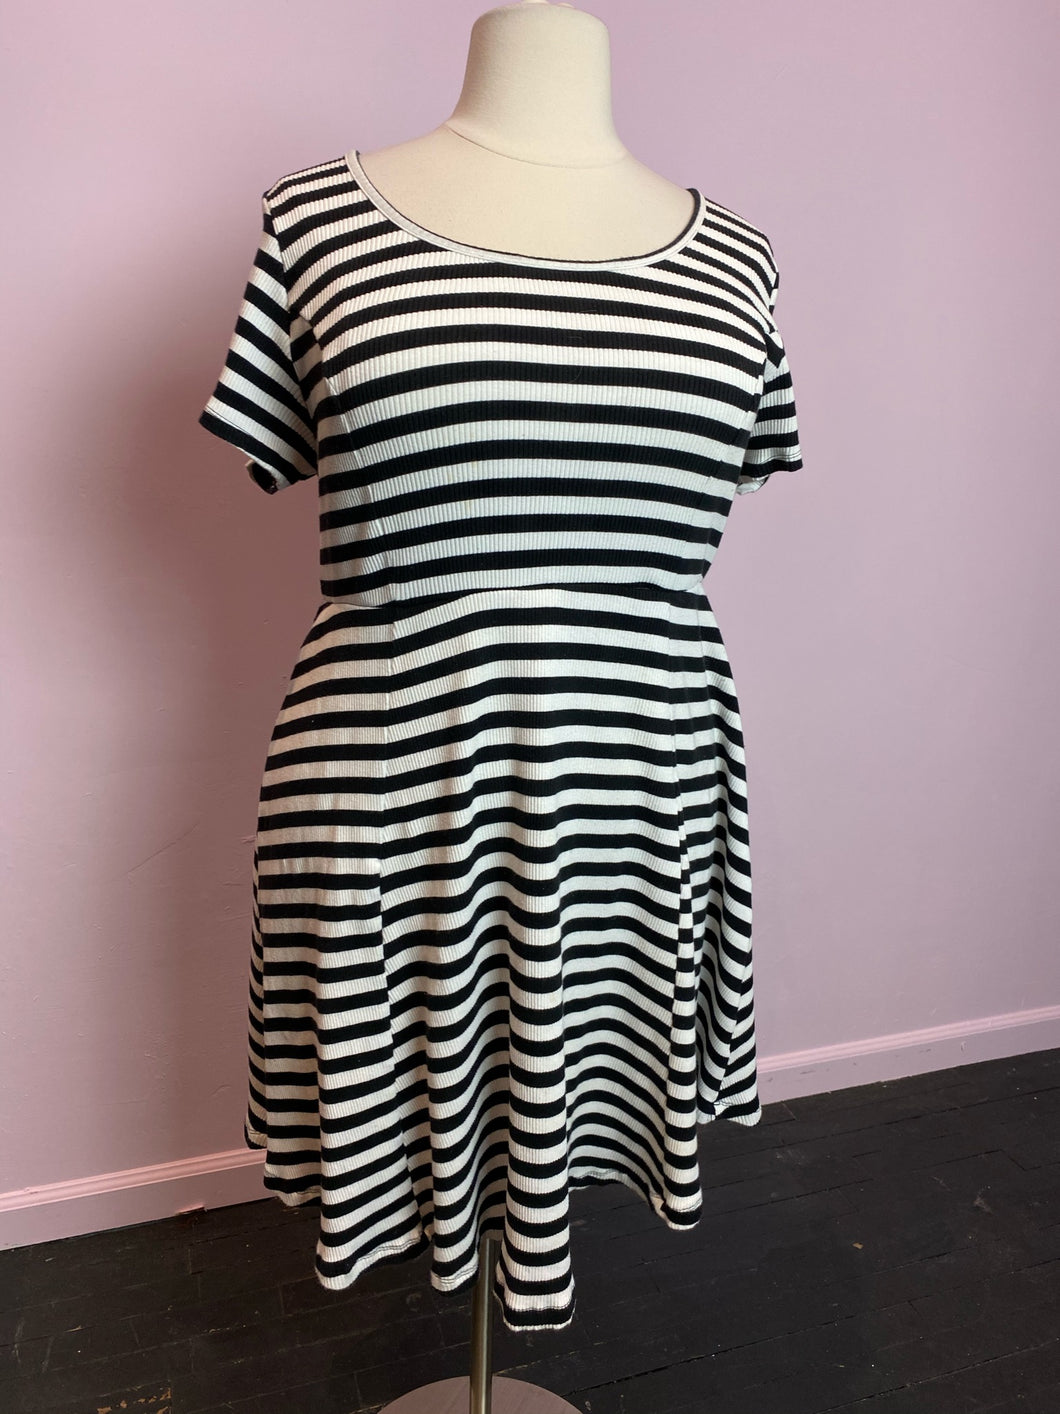 Torrid Black and White Striped Dress, Size 3